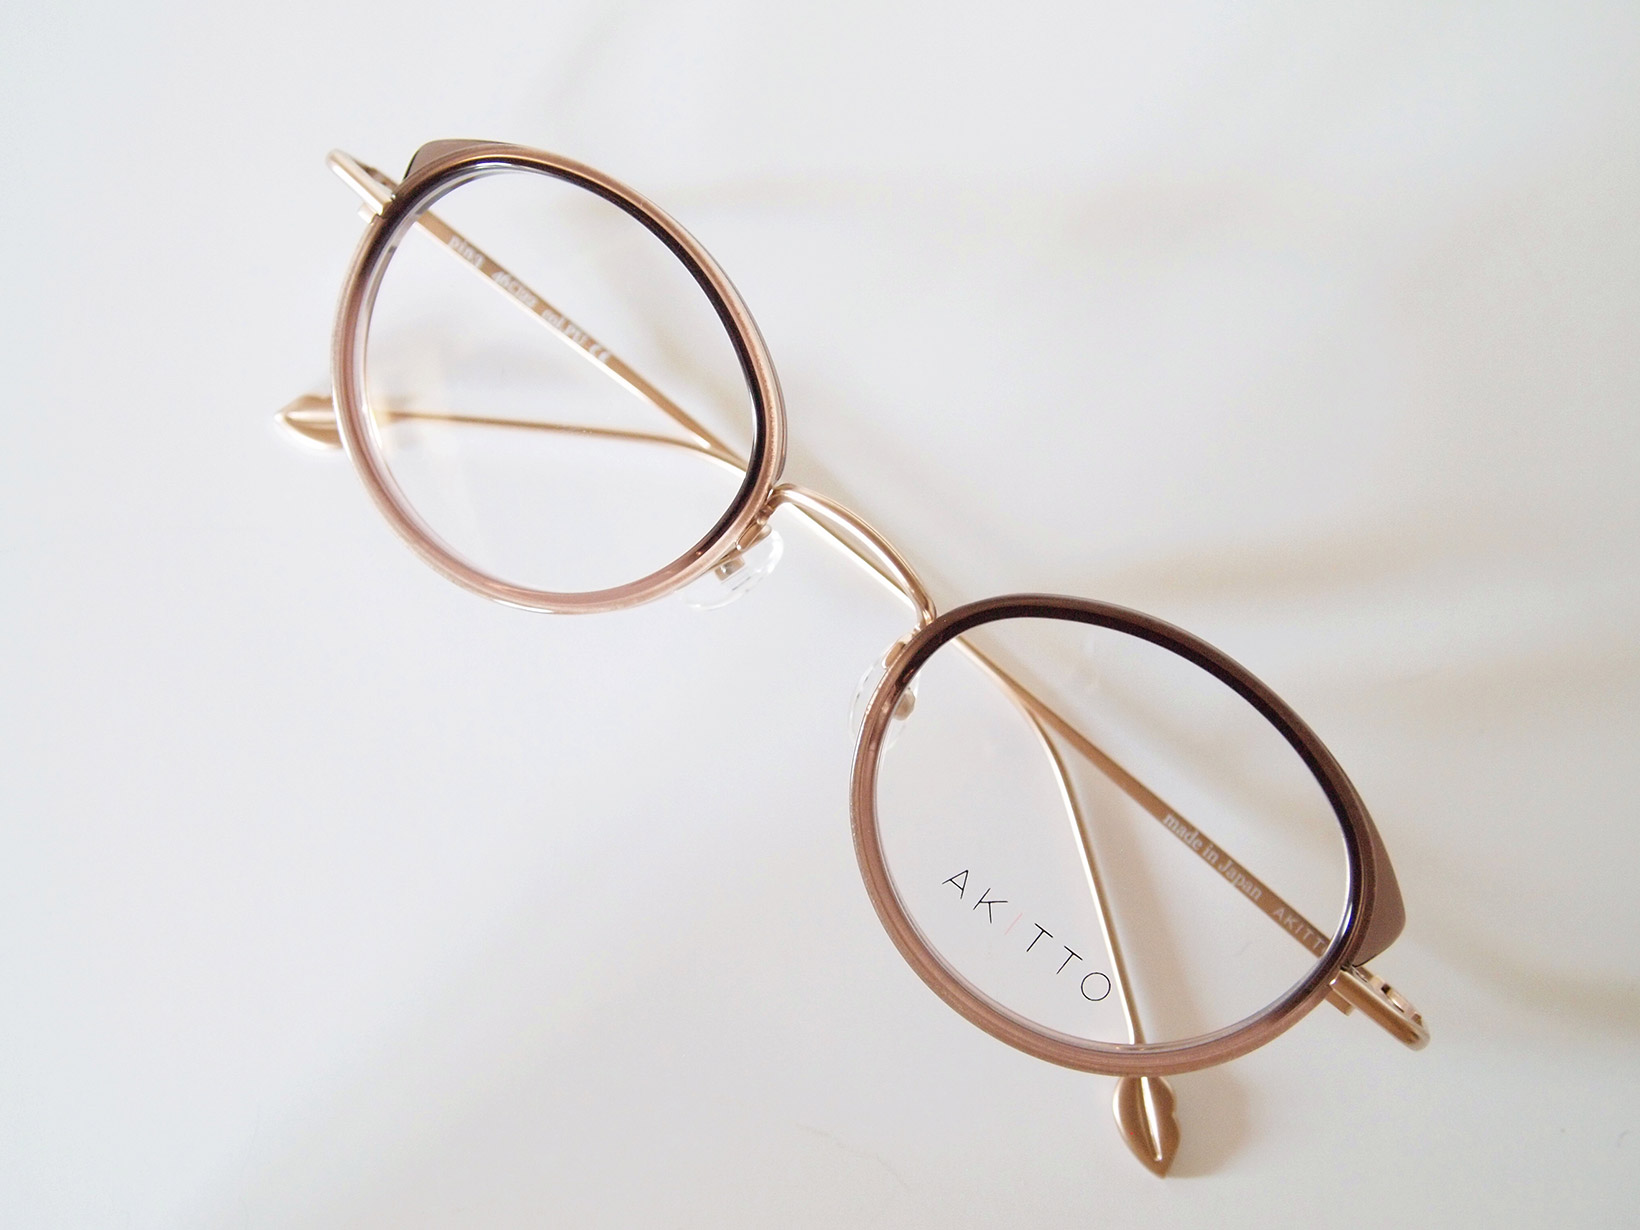 AKITTO 2018-1st pin3 color|PU size:46□22 material:titanium+acetate price:42,000-(+tax)